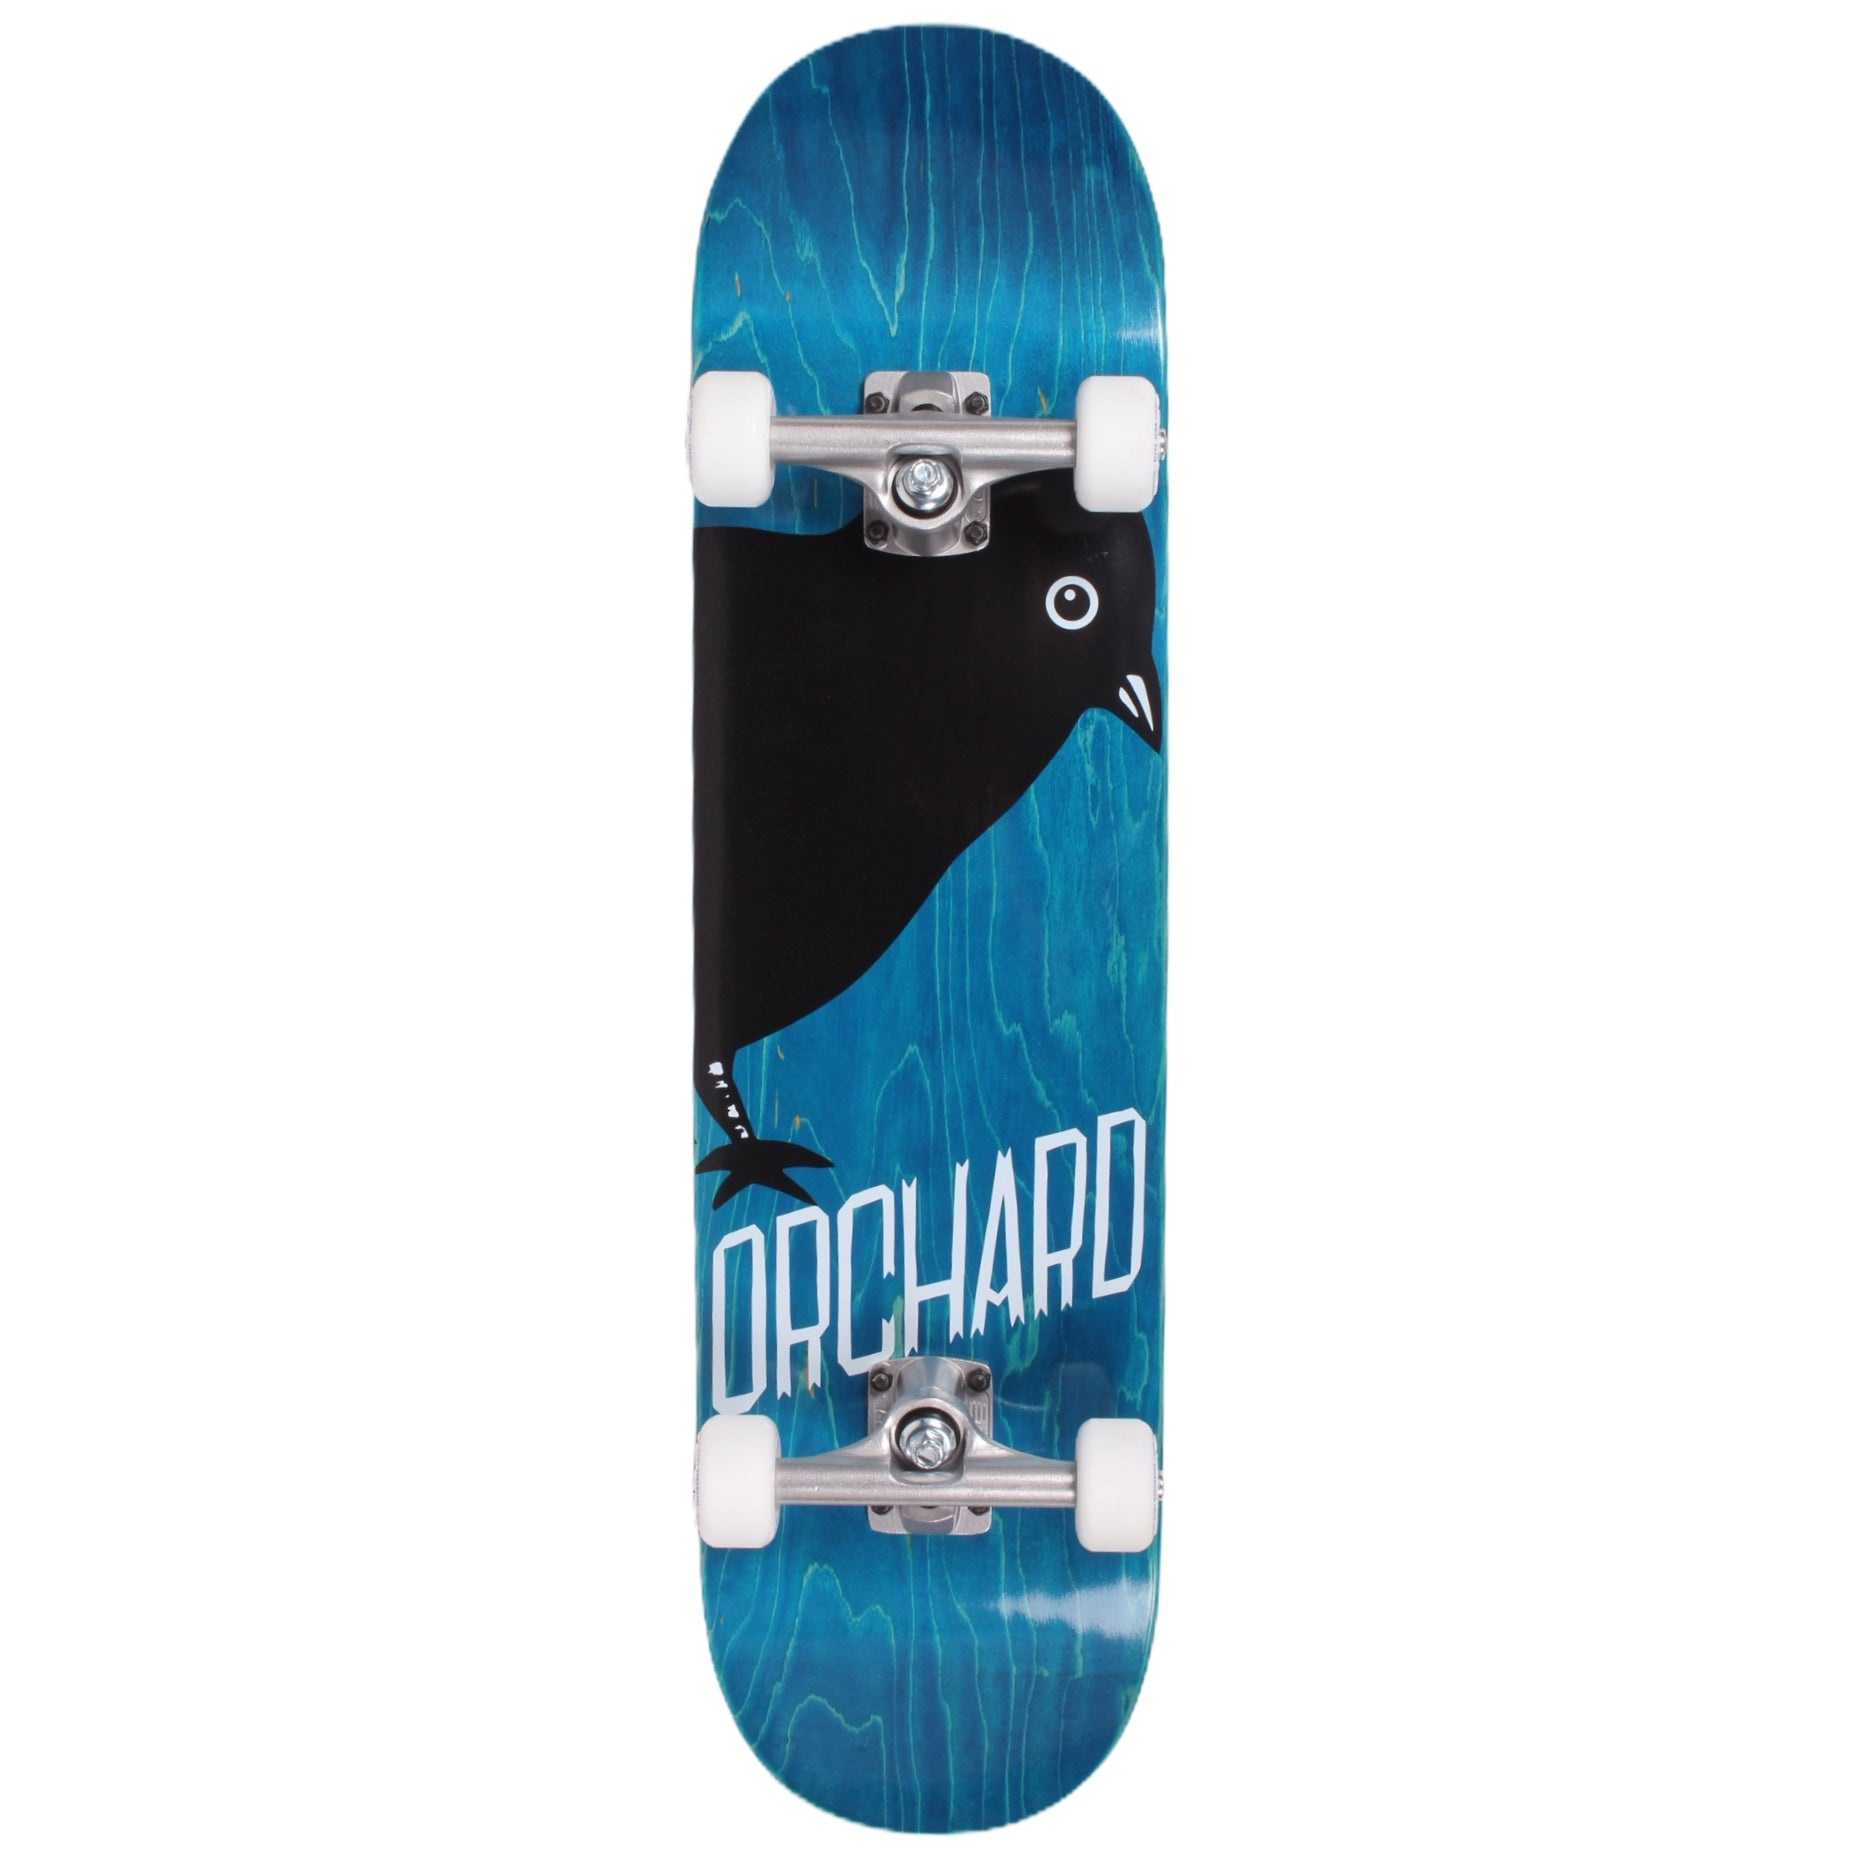 Orchard Bird Complete Blue 8.0""